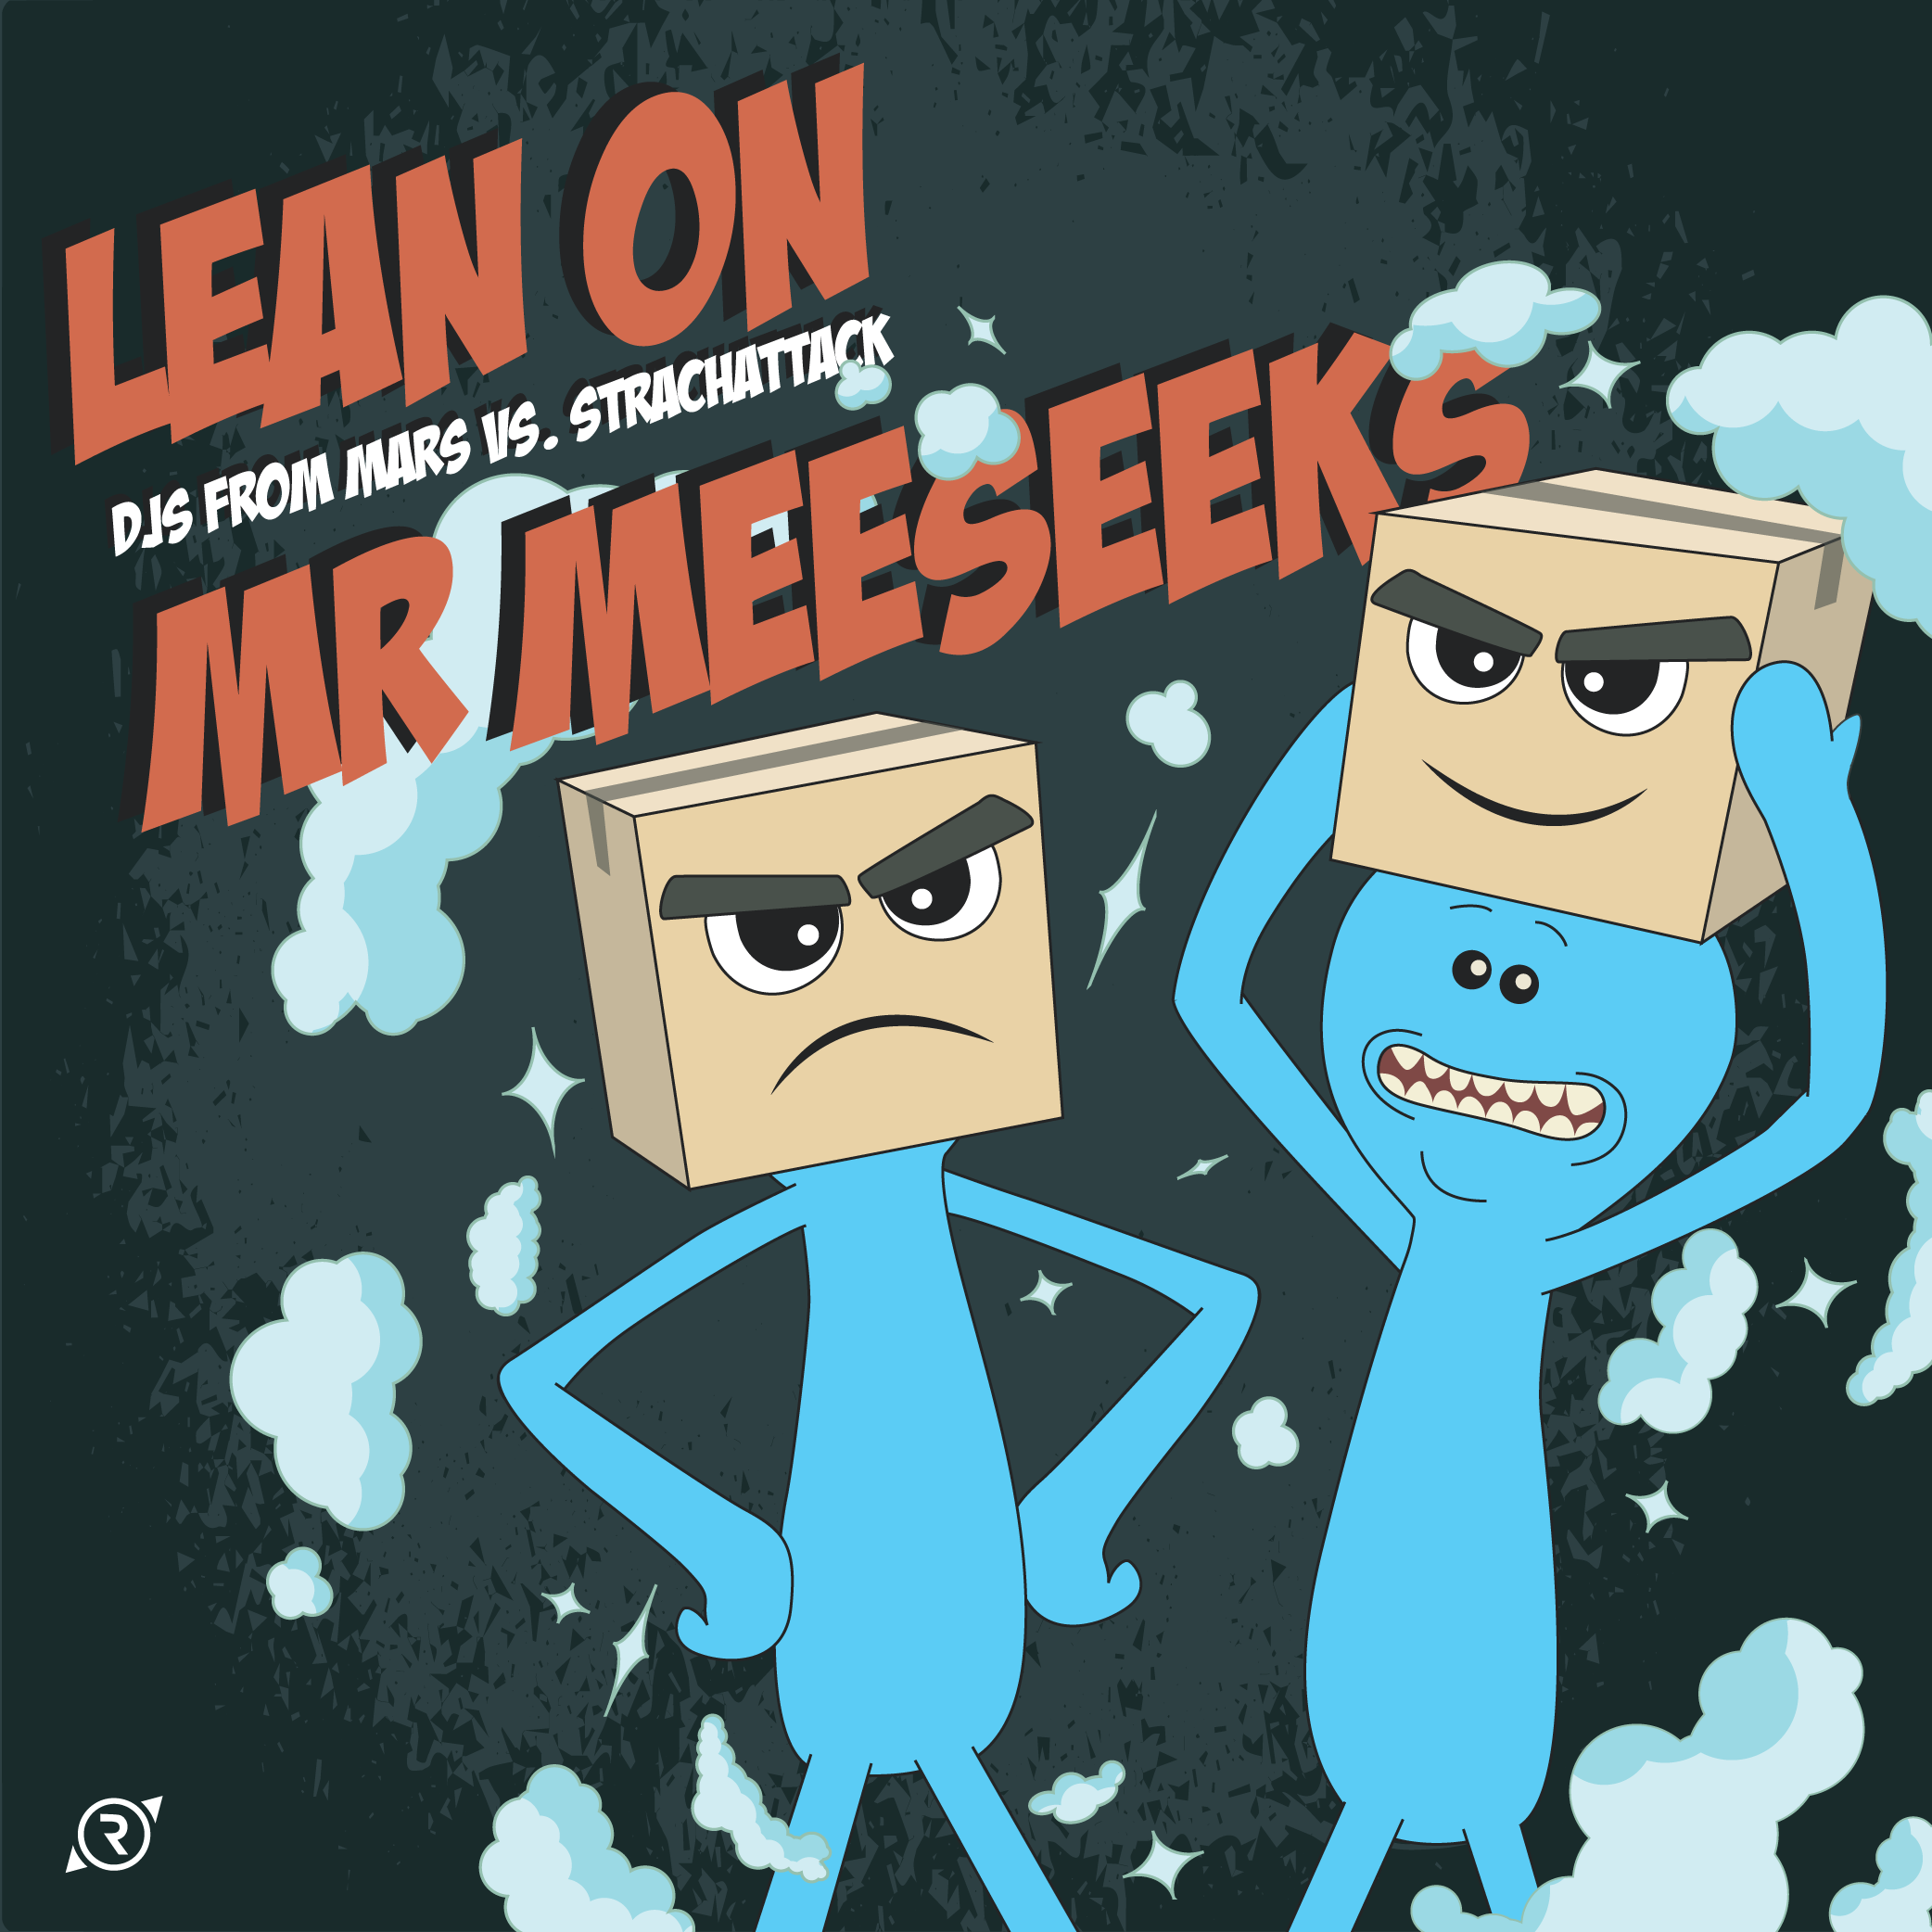 Lean On Mr Meeseeks (DJs From Mars, StrachAttack, Knife Party, Major Lazer, Rick and Morty)